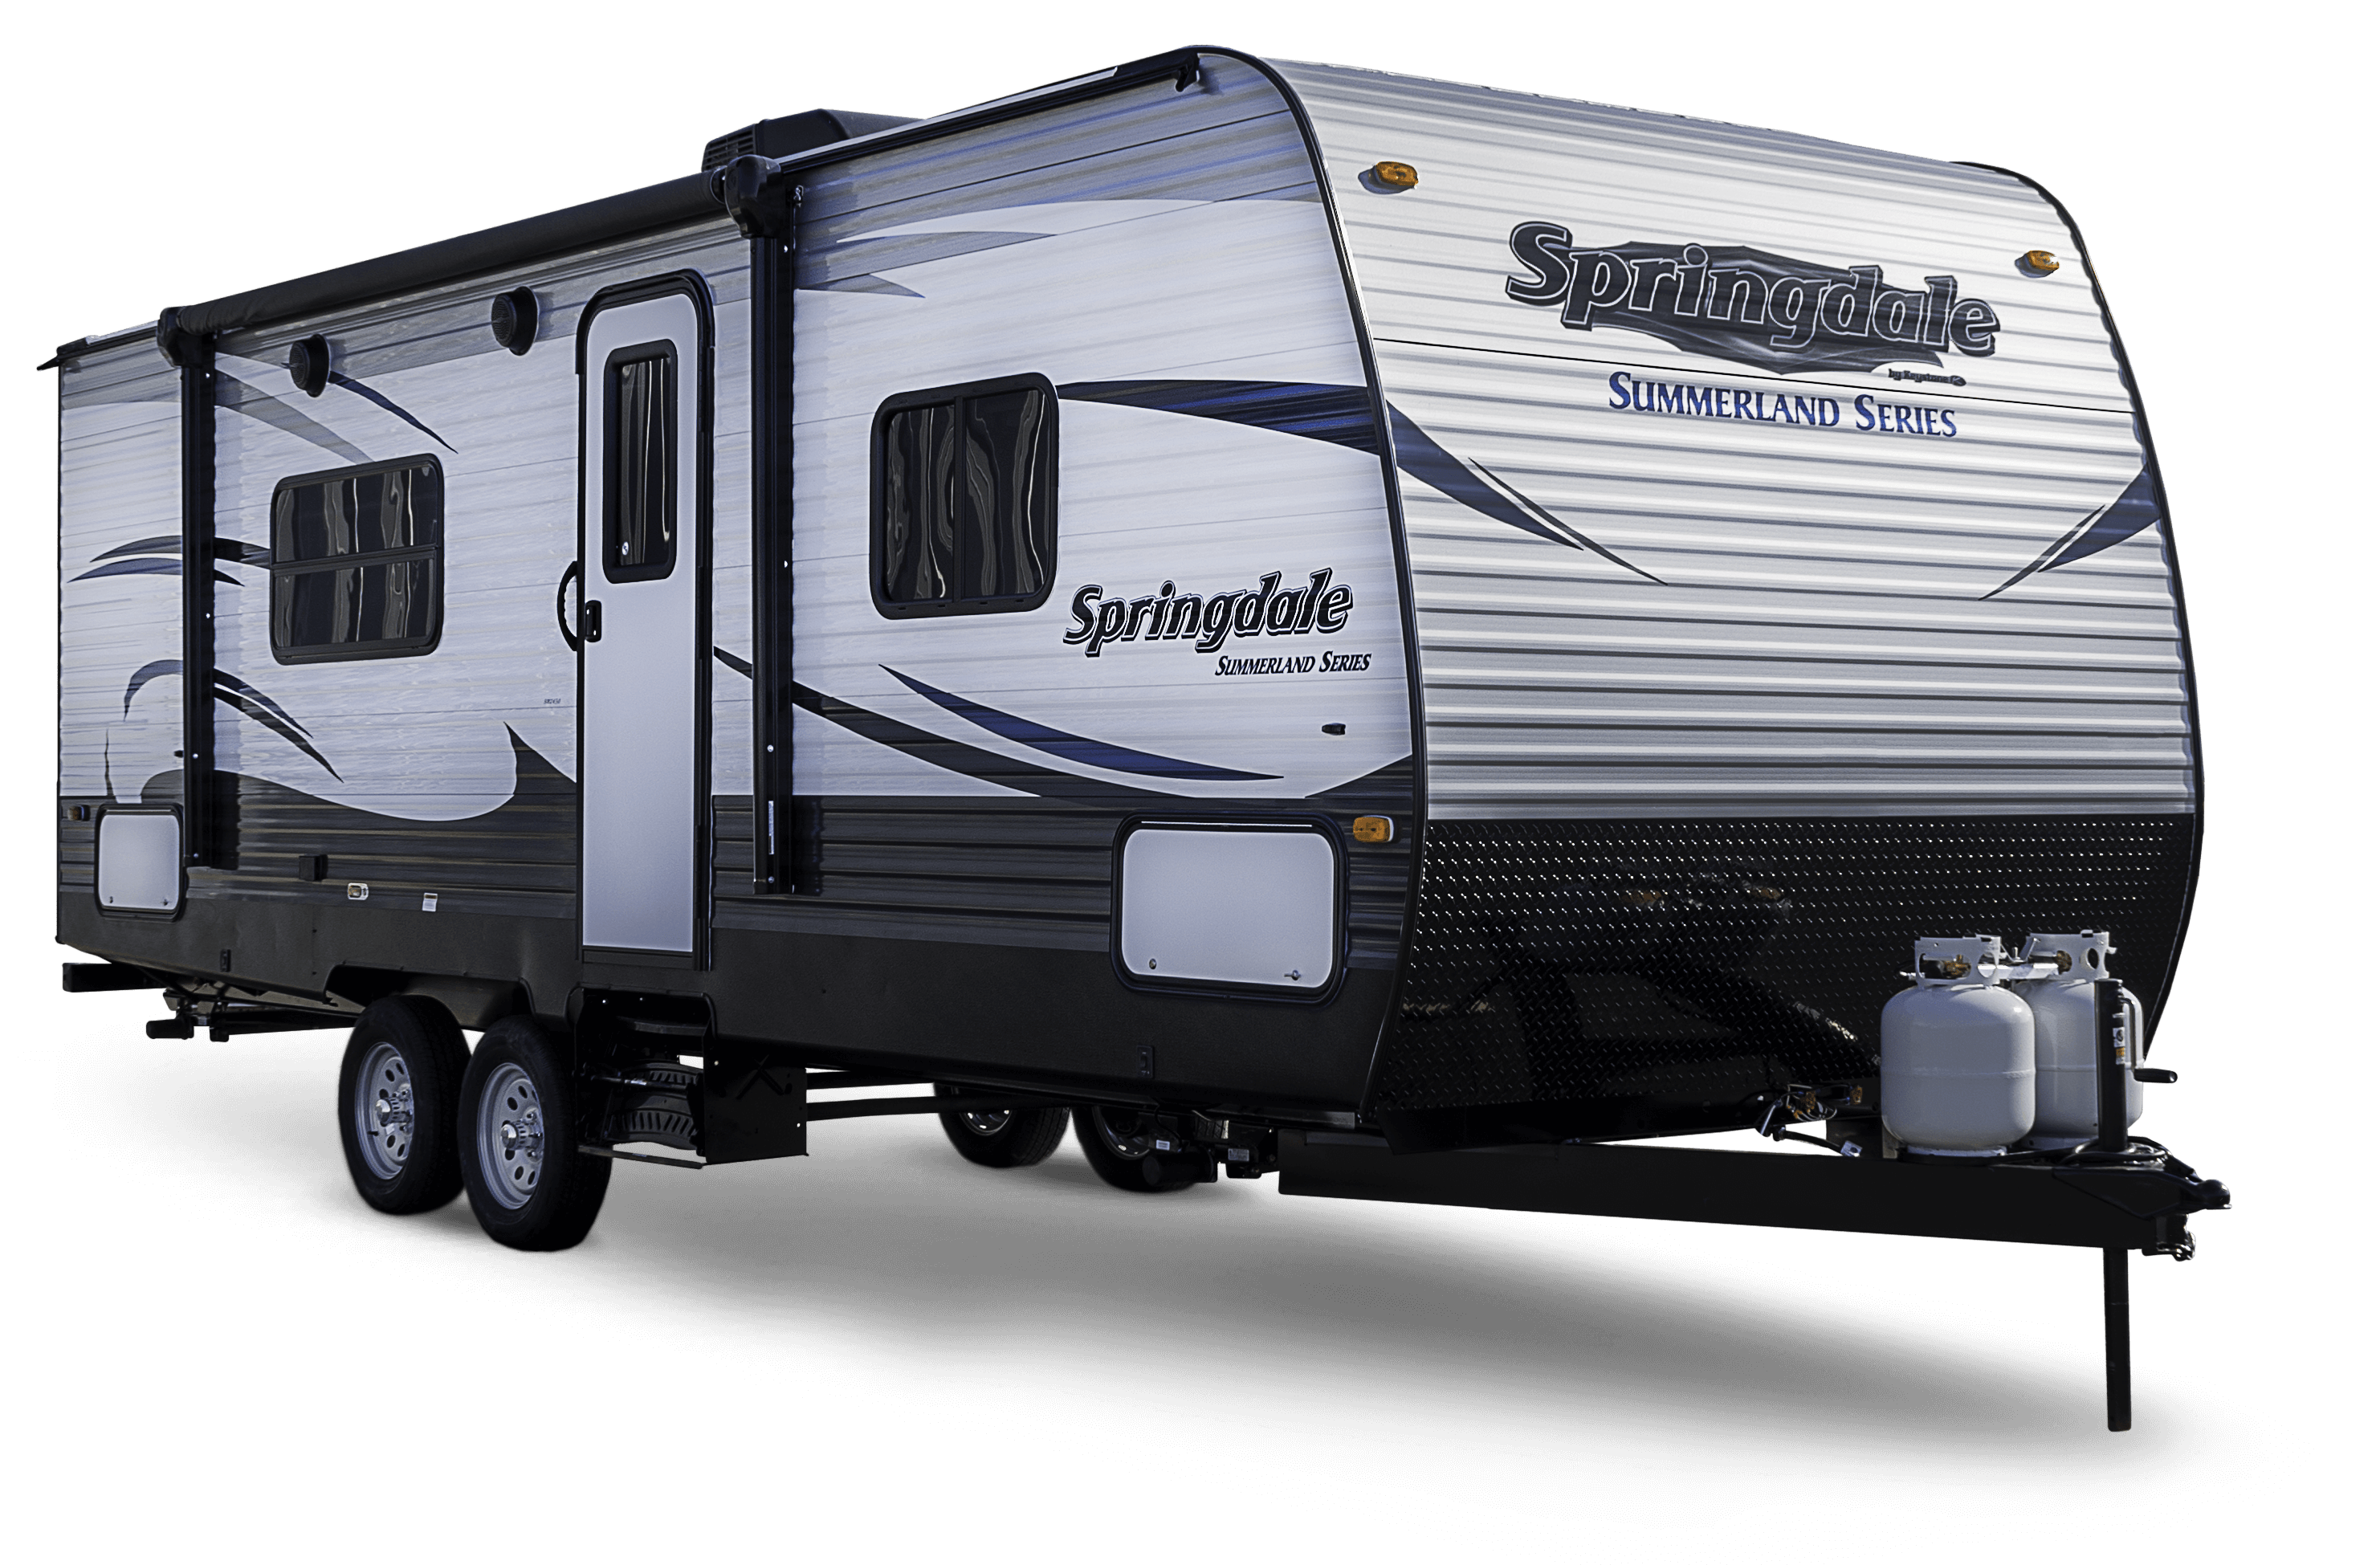 Summerland Travel Trailer